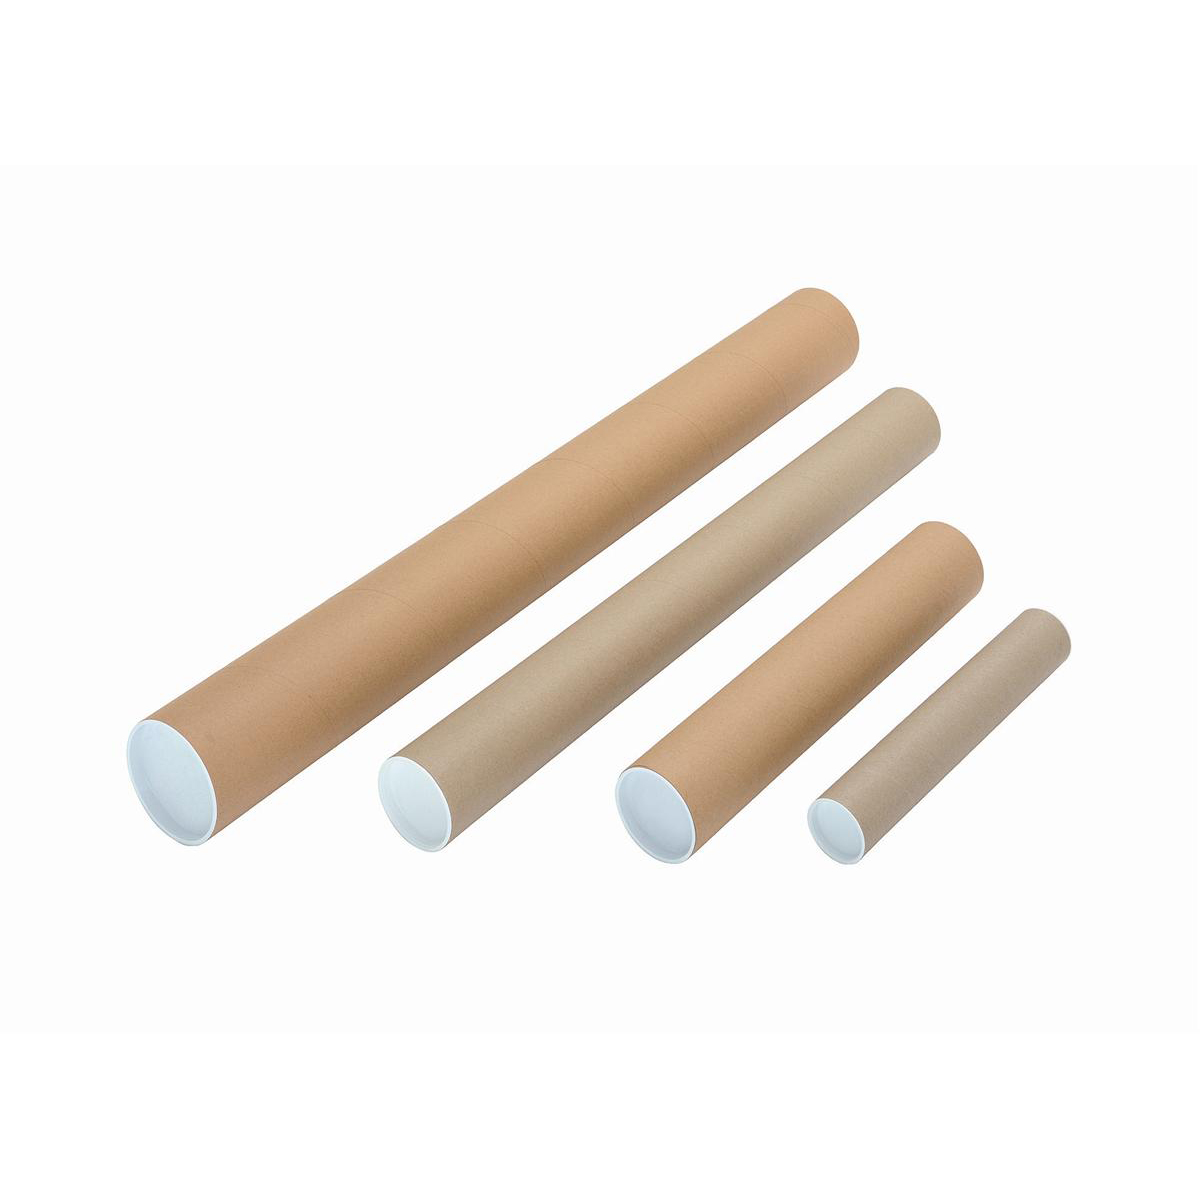 Postal Tube Cardboard with Plastic End Caps A4-A3 L330xDia.50mm PT 330/50MM Pack 25